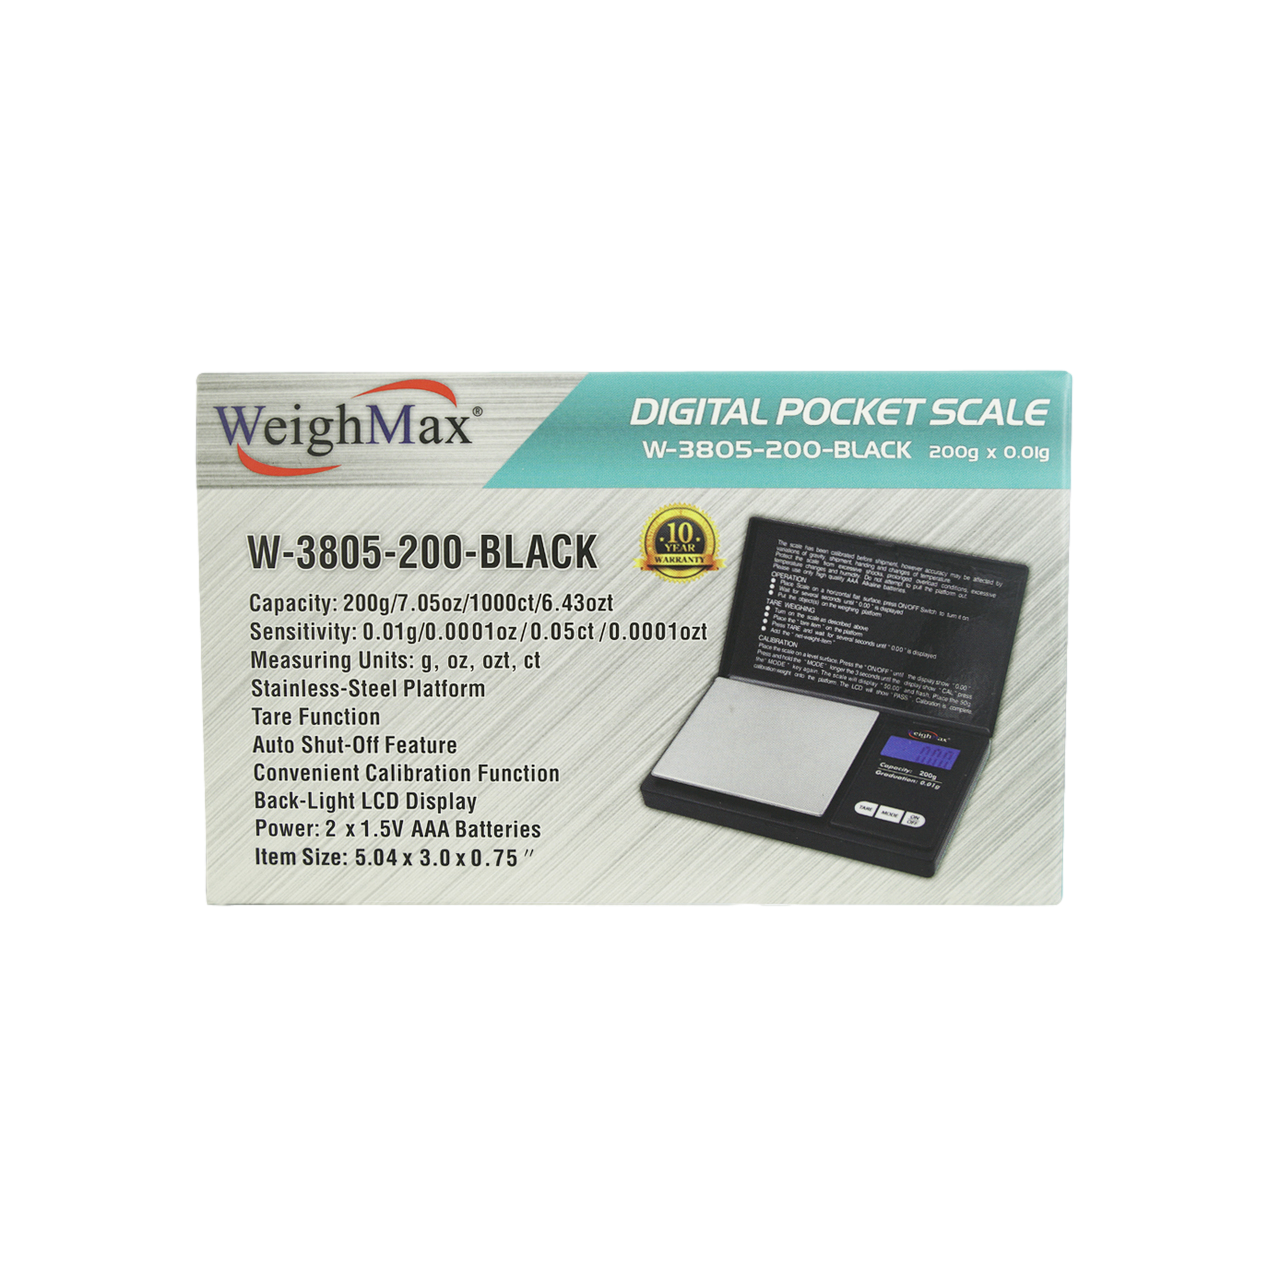 WeighMax Scale W-3805-200